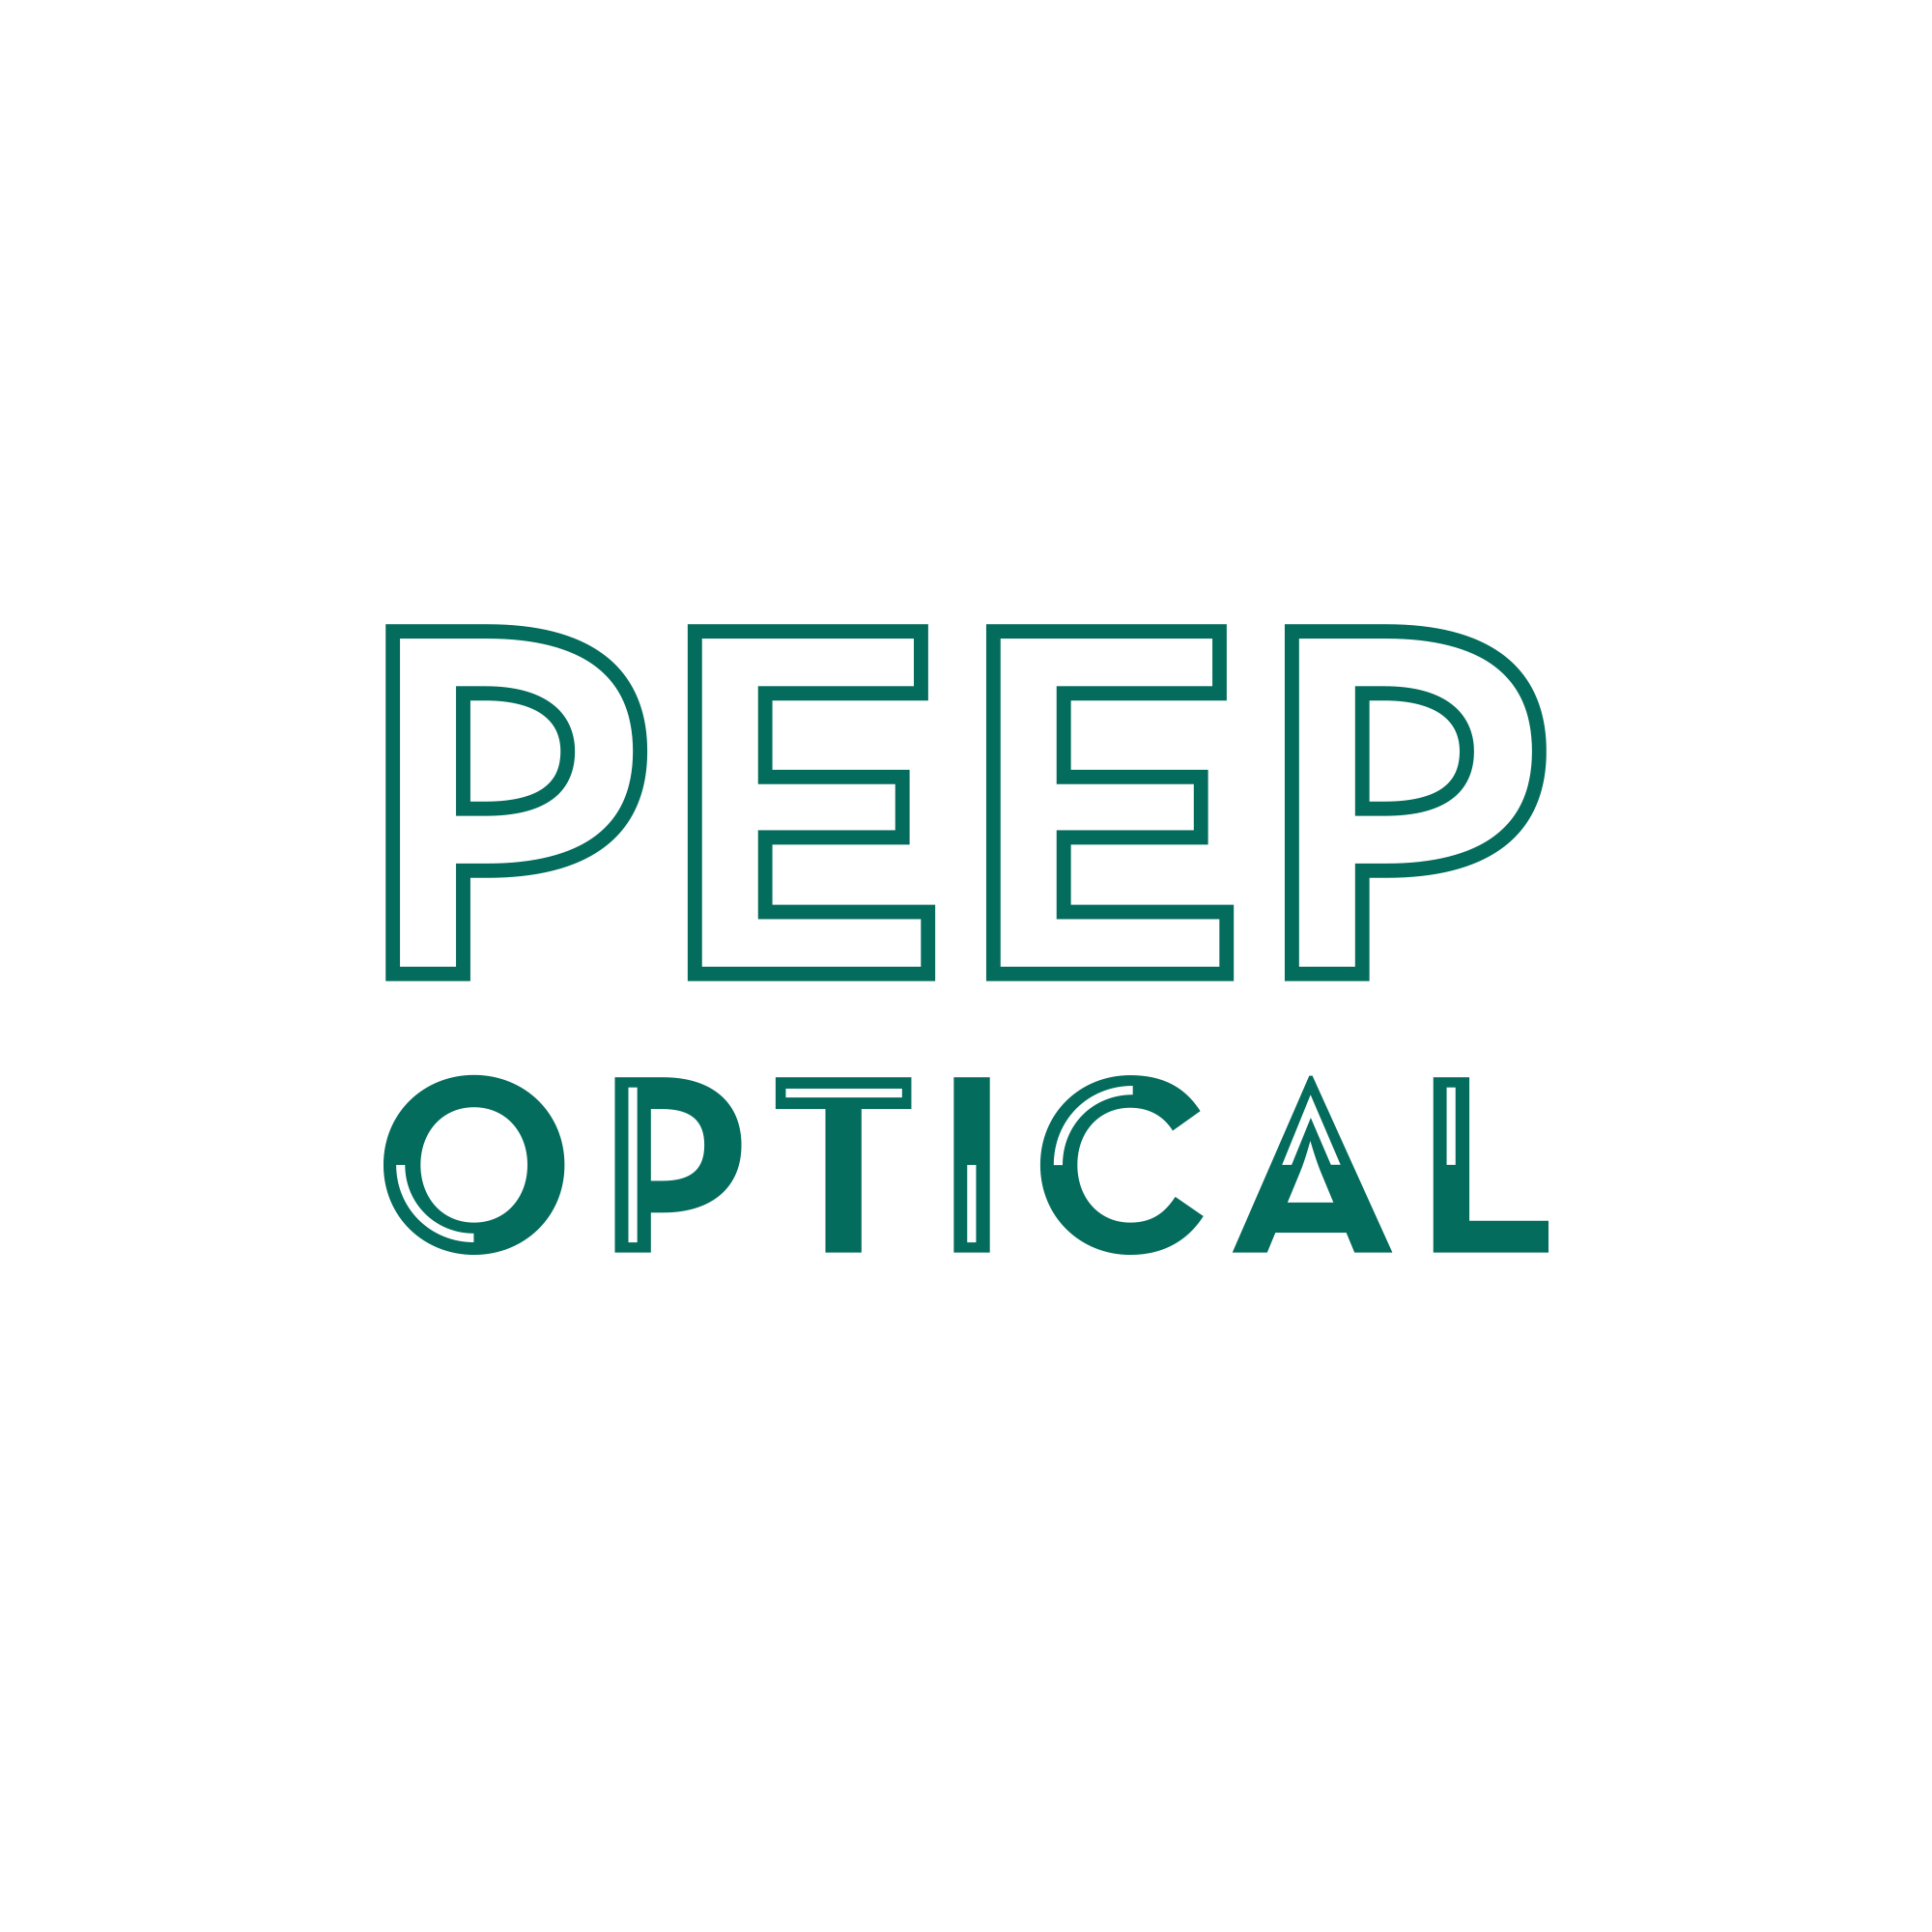 Peep Optical logo